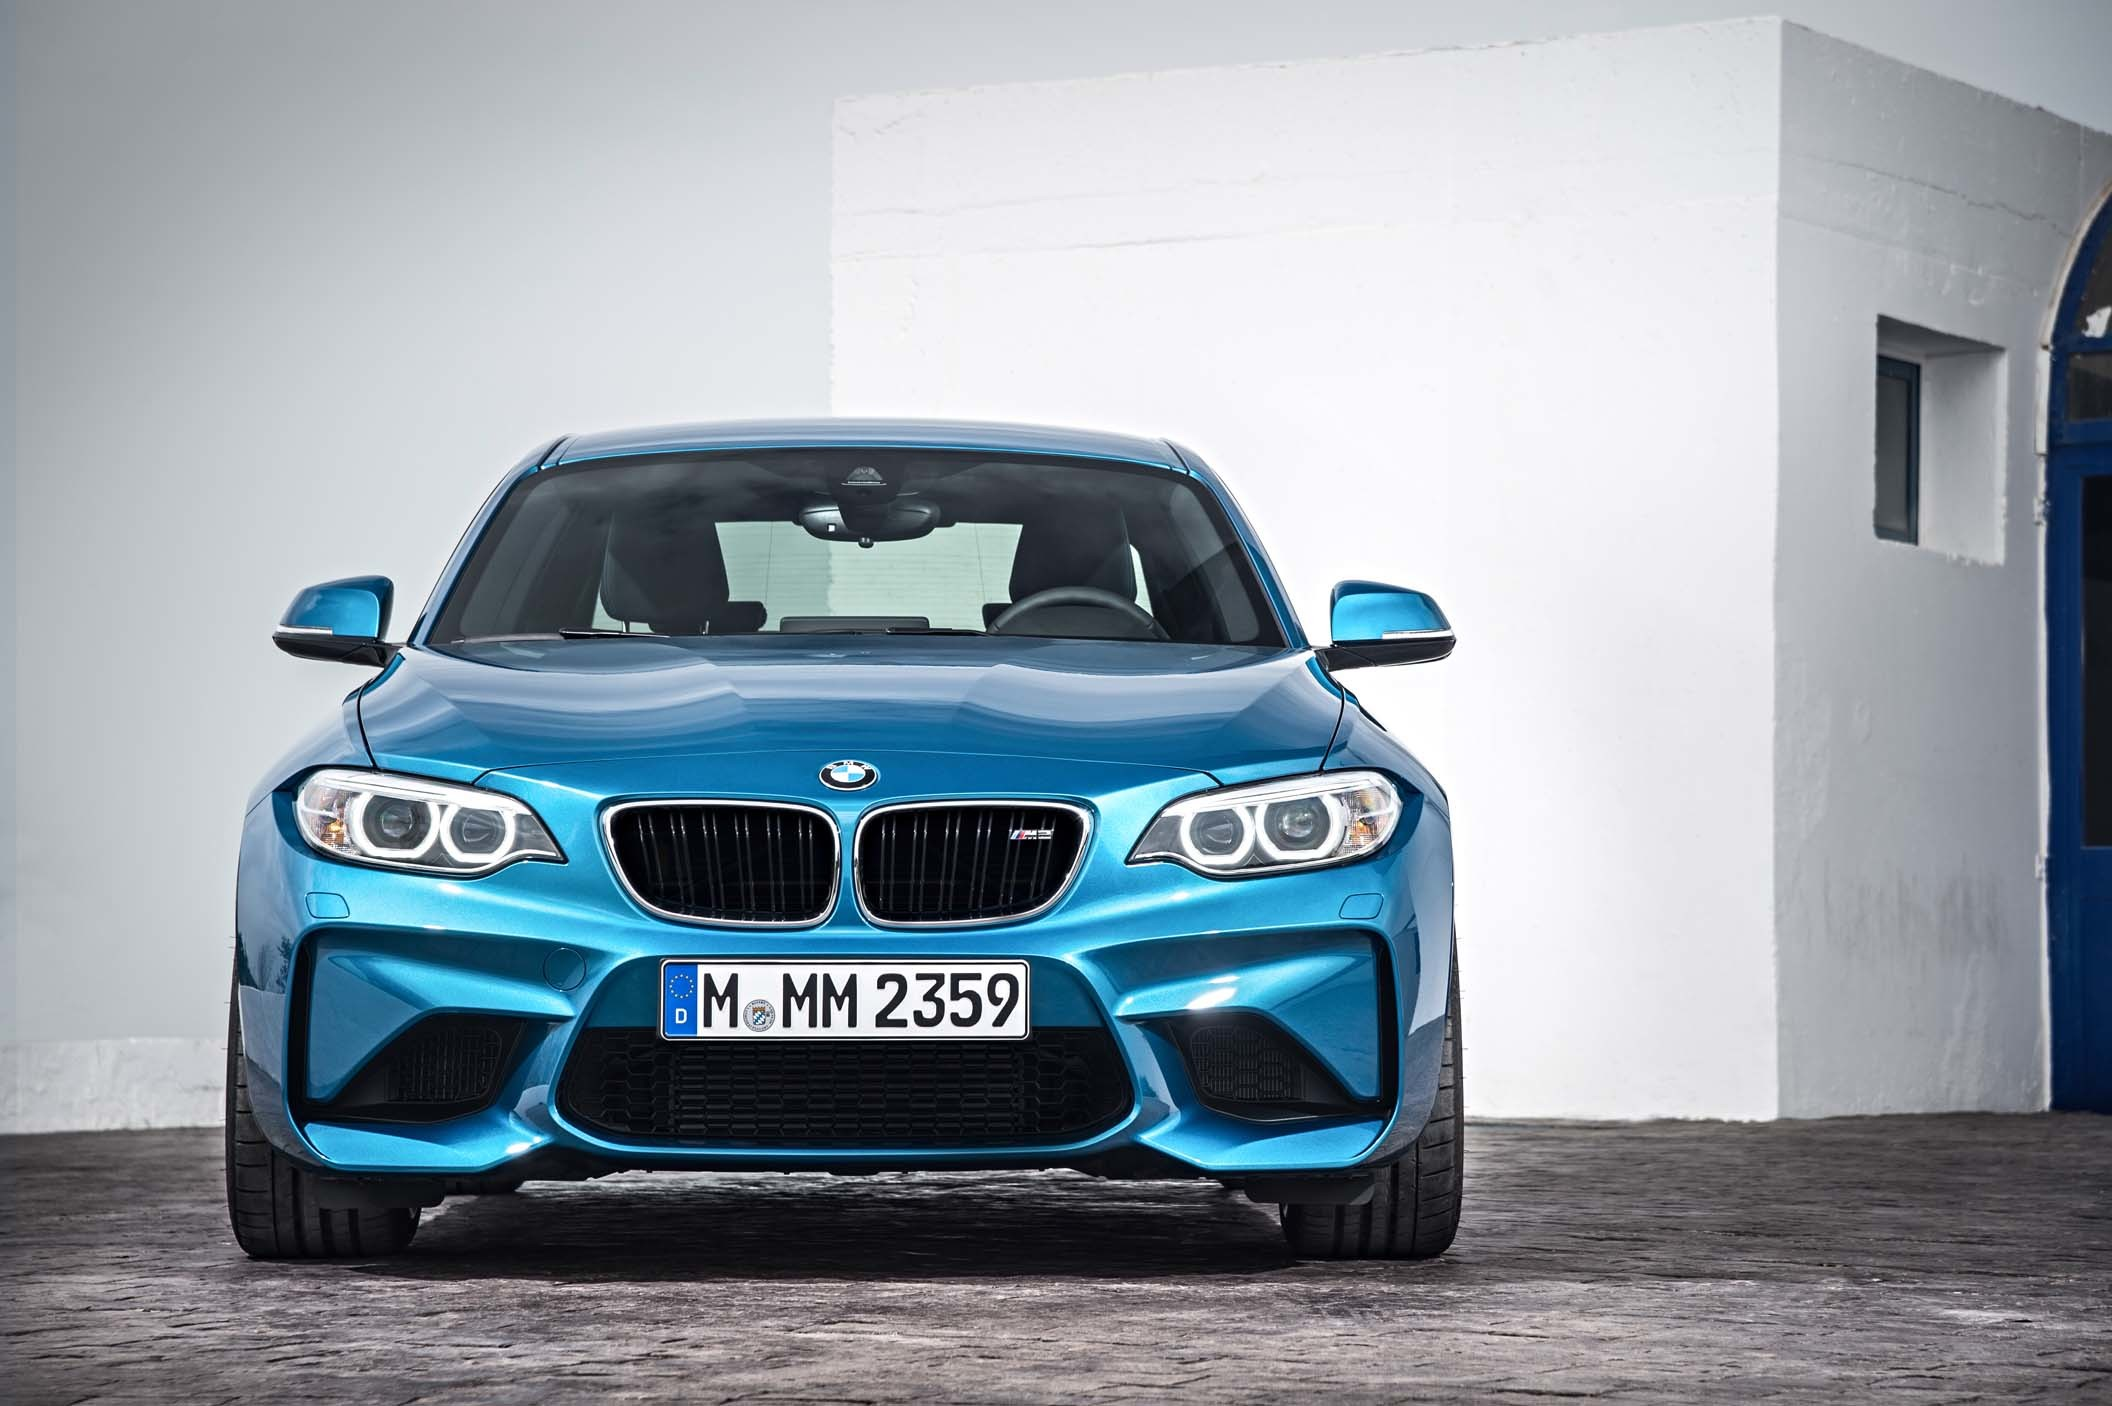 2016 BMW M2 Photo Gallery - Autoblog